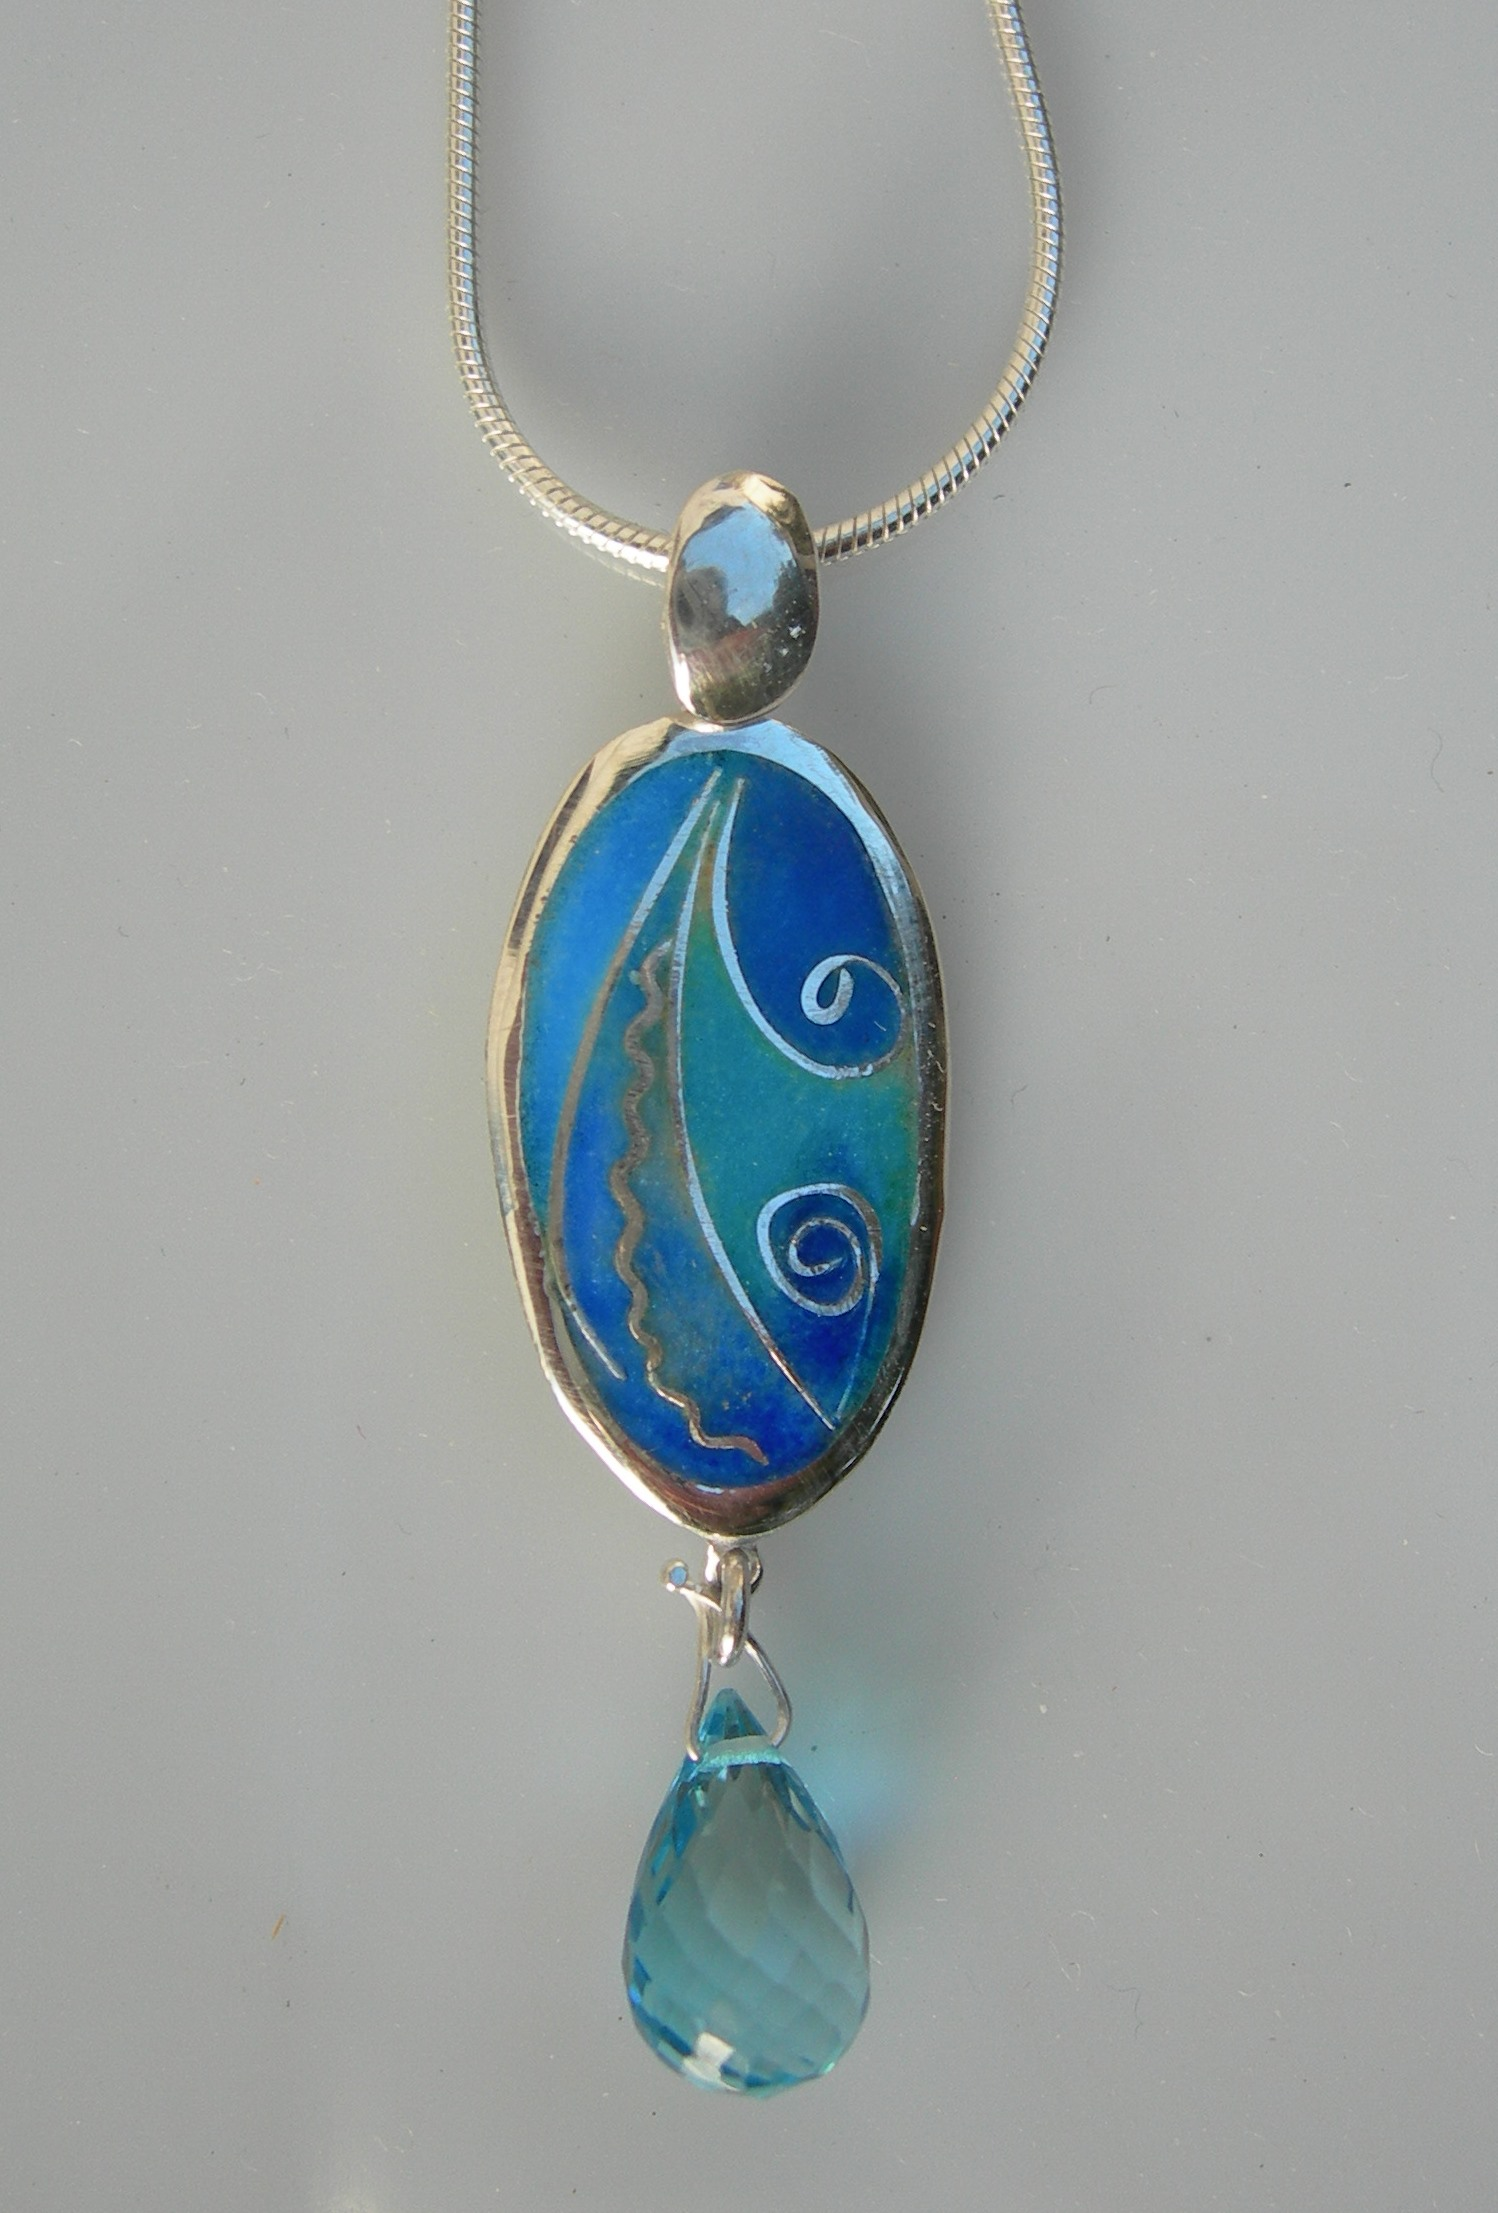 Blue oval pendant in sterling silver